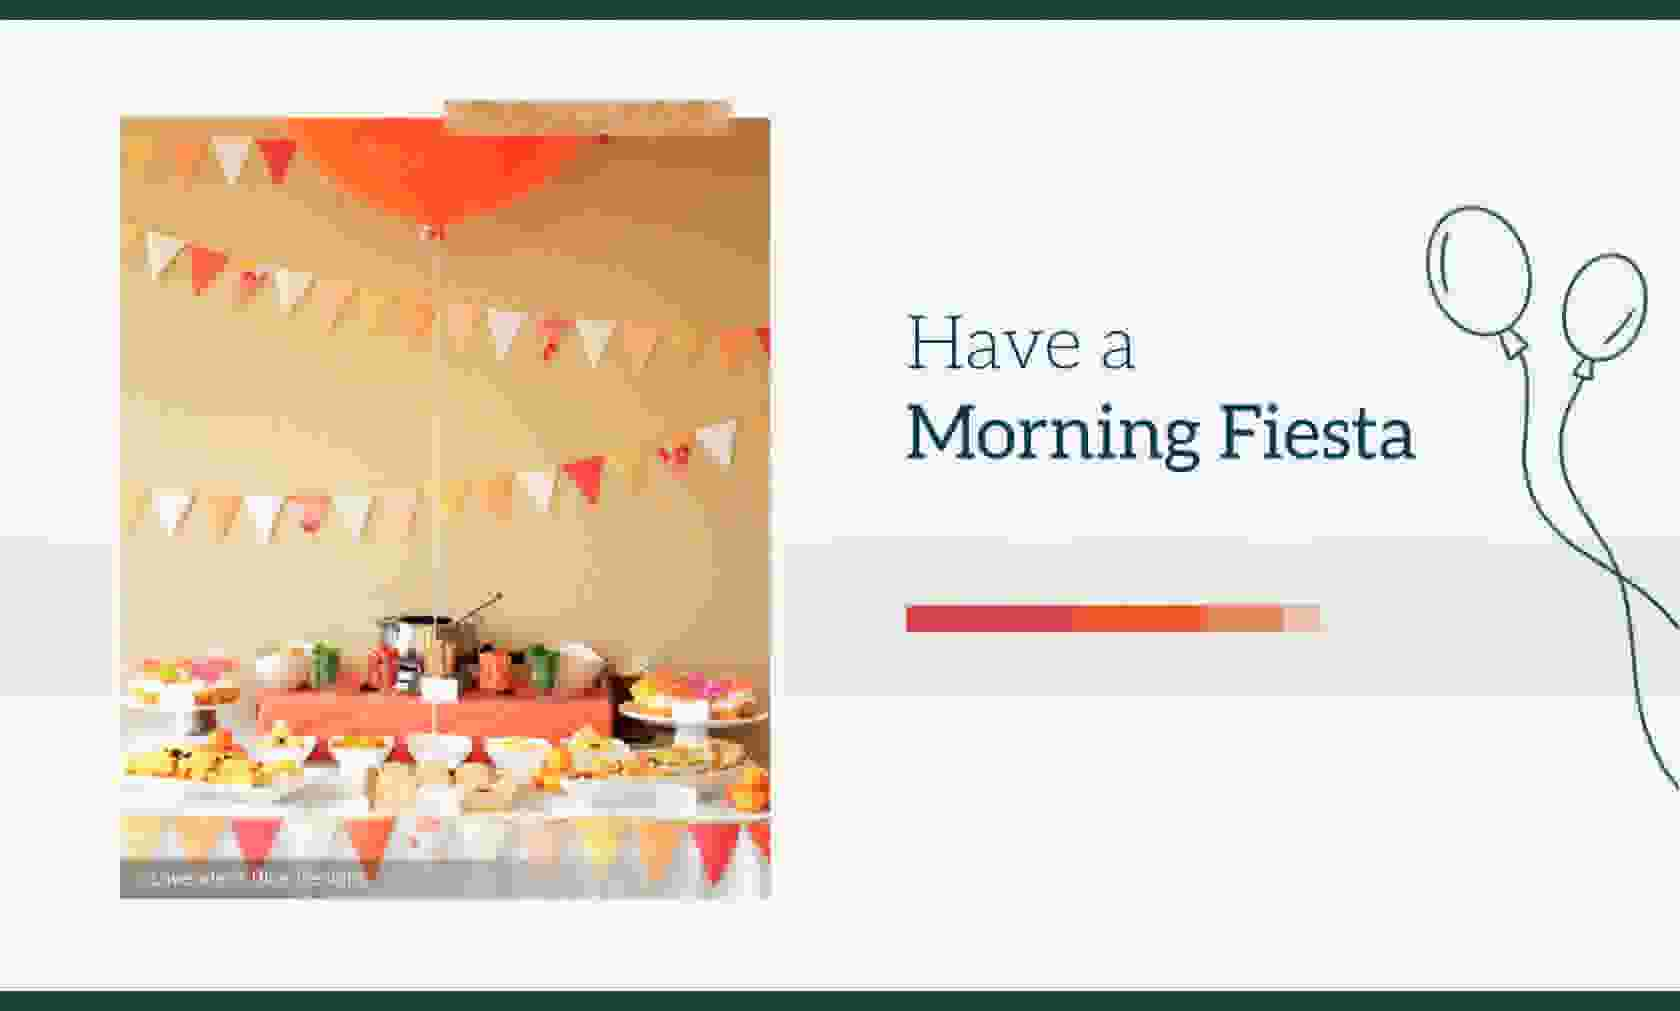 Have a Morning Fiesta